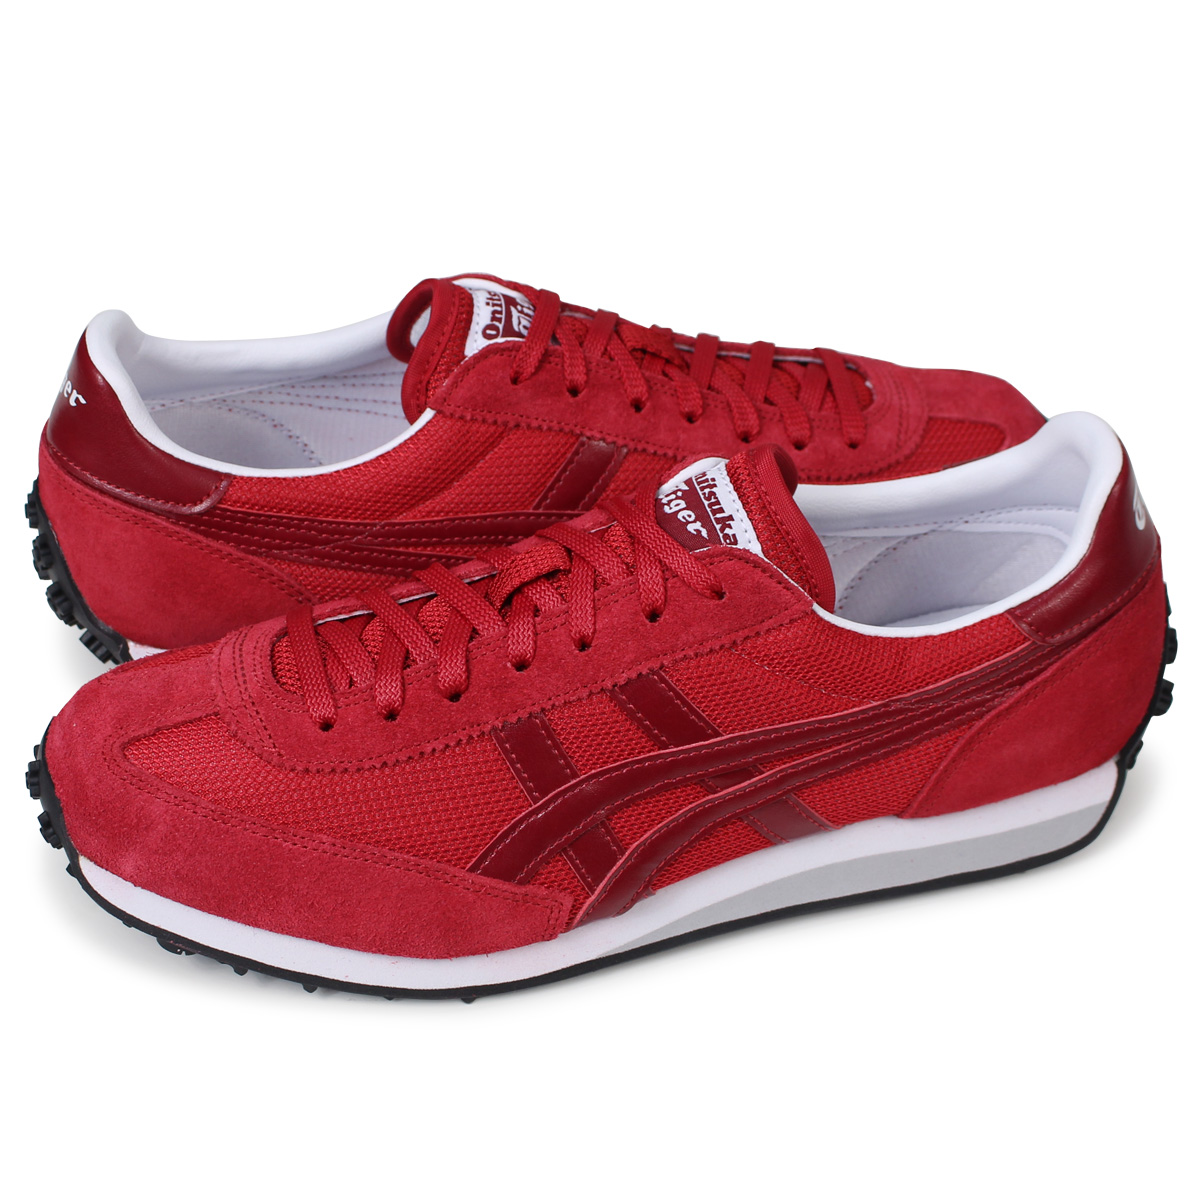 more photos 1d4d4 9d6fe Onitsuka Tiger EDR 78 Onitsuka tiger Edy are 78 men's lady's sneakers  TH503N-2326 red [load planned Shinnyu load in reservation product 5/2 ...